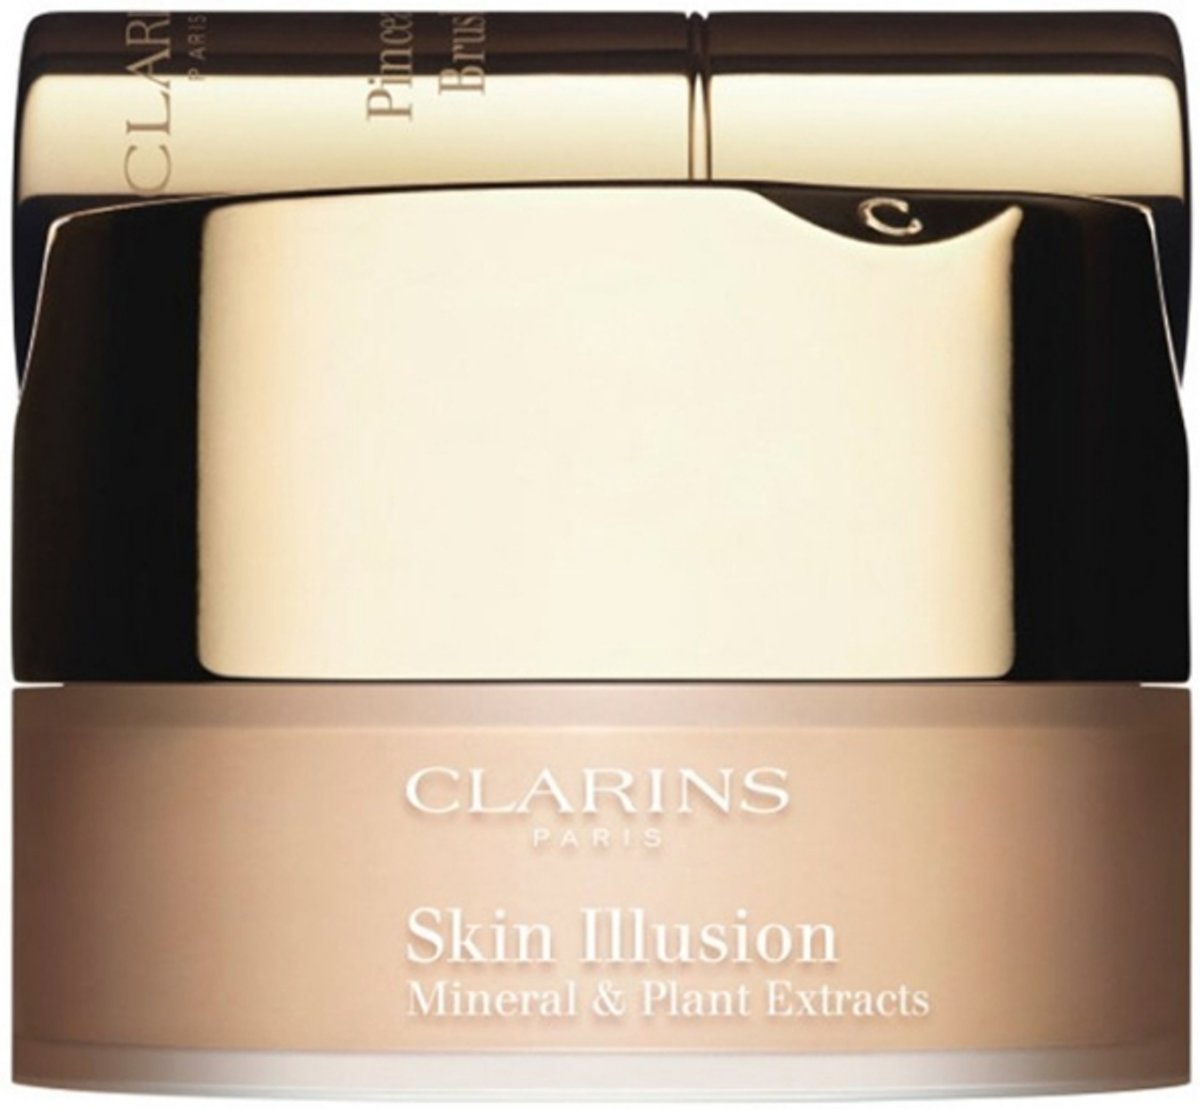 Clarins-Skin Illusion Loose Powder Foundation -nr. 112